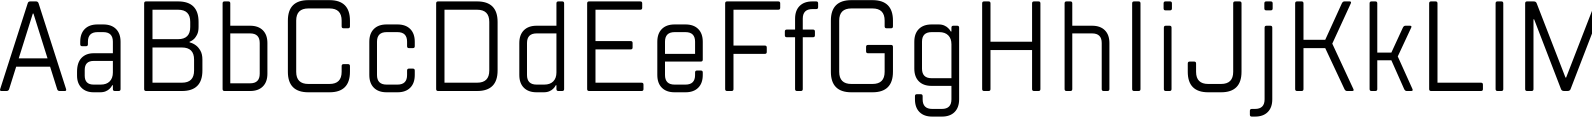 TT Lakes Condensed Regular Font